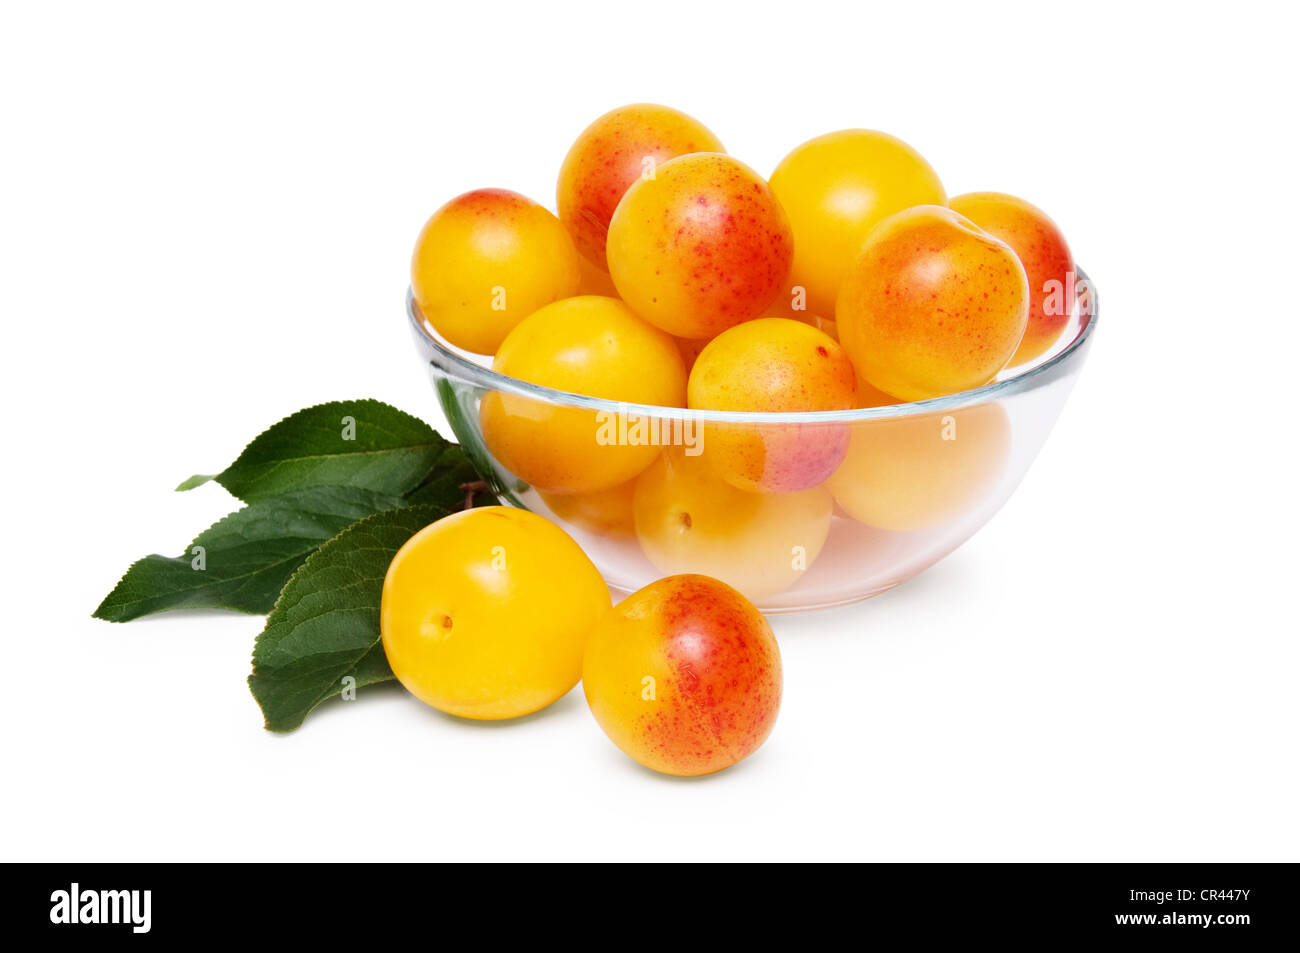 glass bowl of the yellow damson plum isolated on a white background - Stock Image